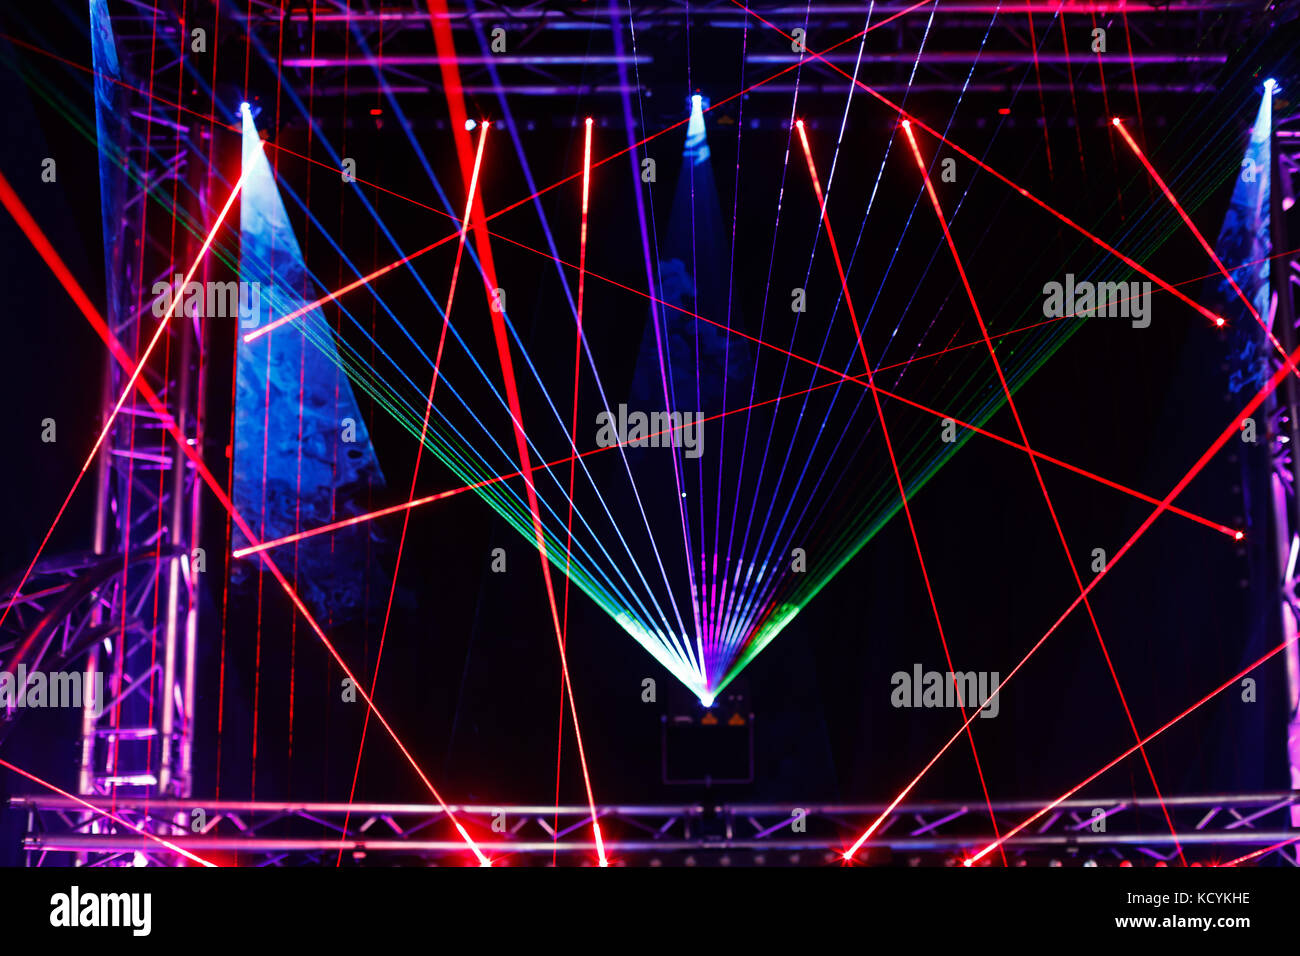 Laser light show on the club stage. - Stock Image